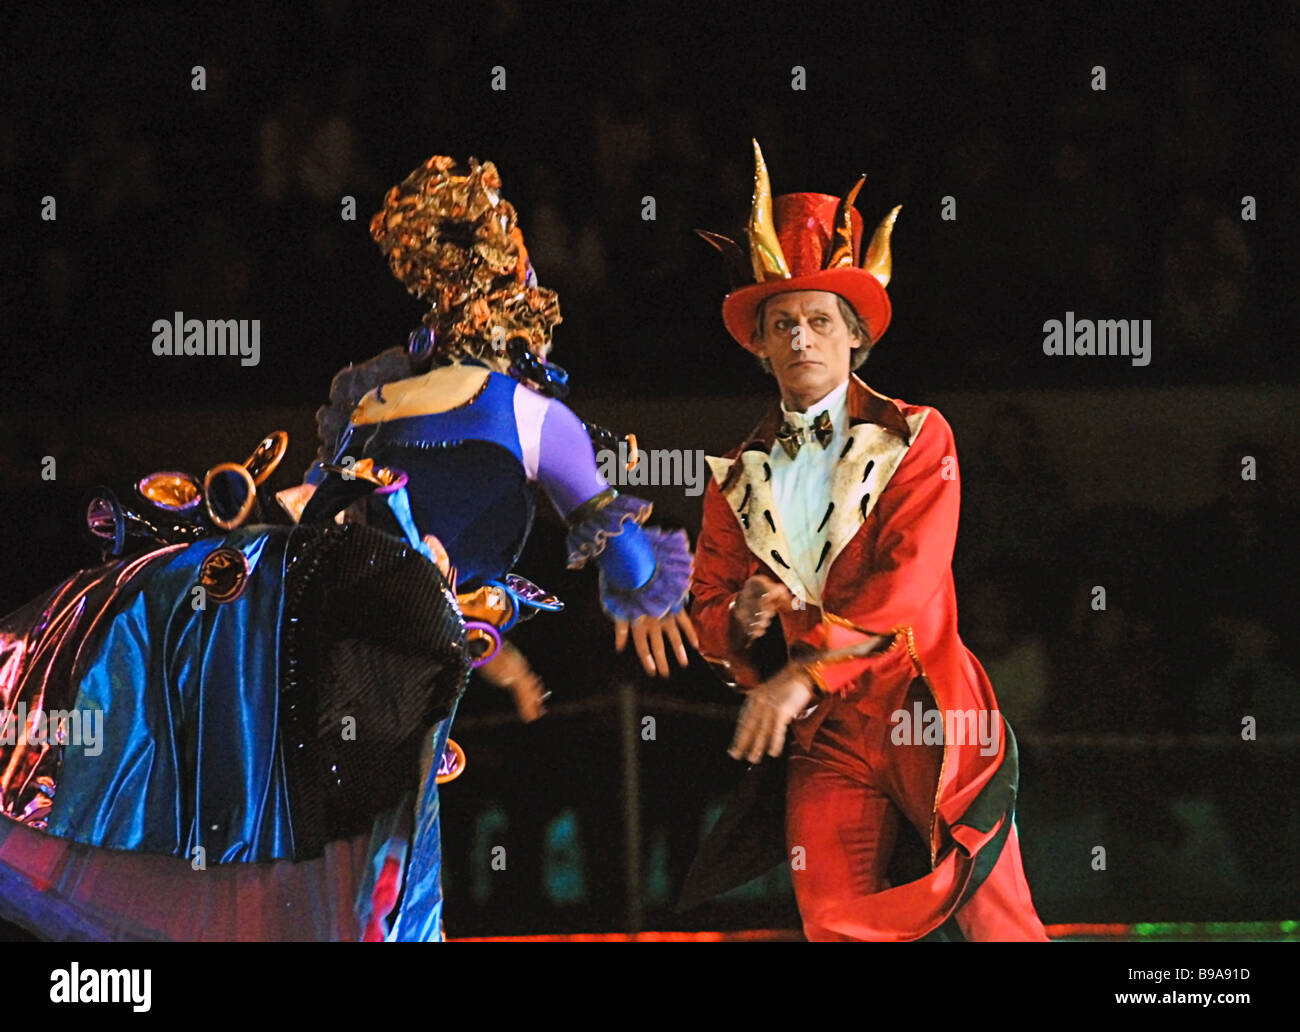 Igor Bobrin European champion in men s singles as King in a scene from the Cinderella production of the Ice Miniature - Stock Image